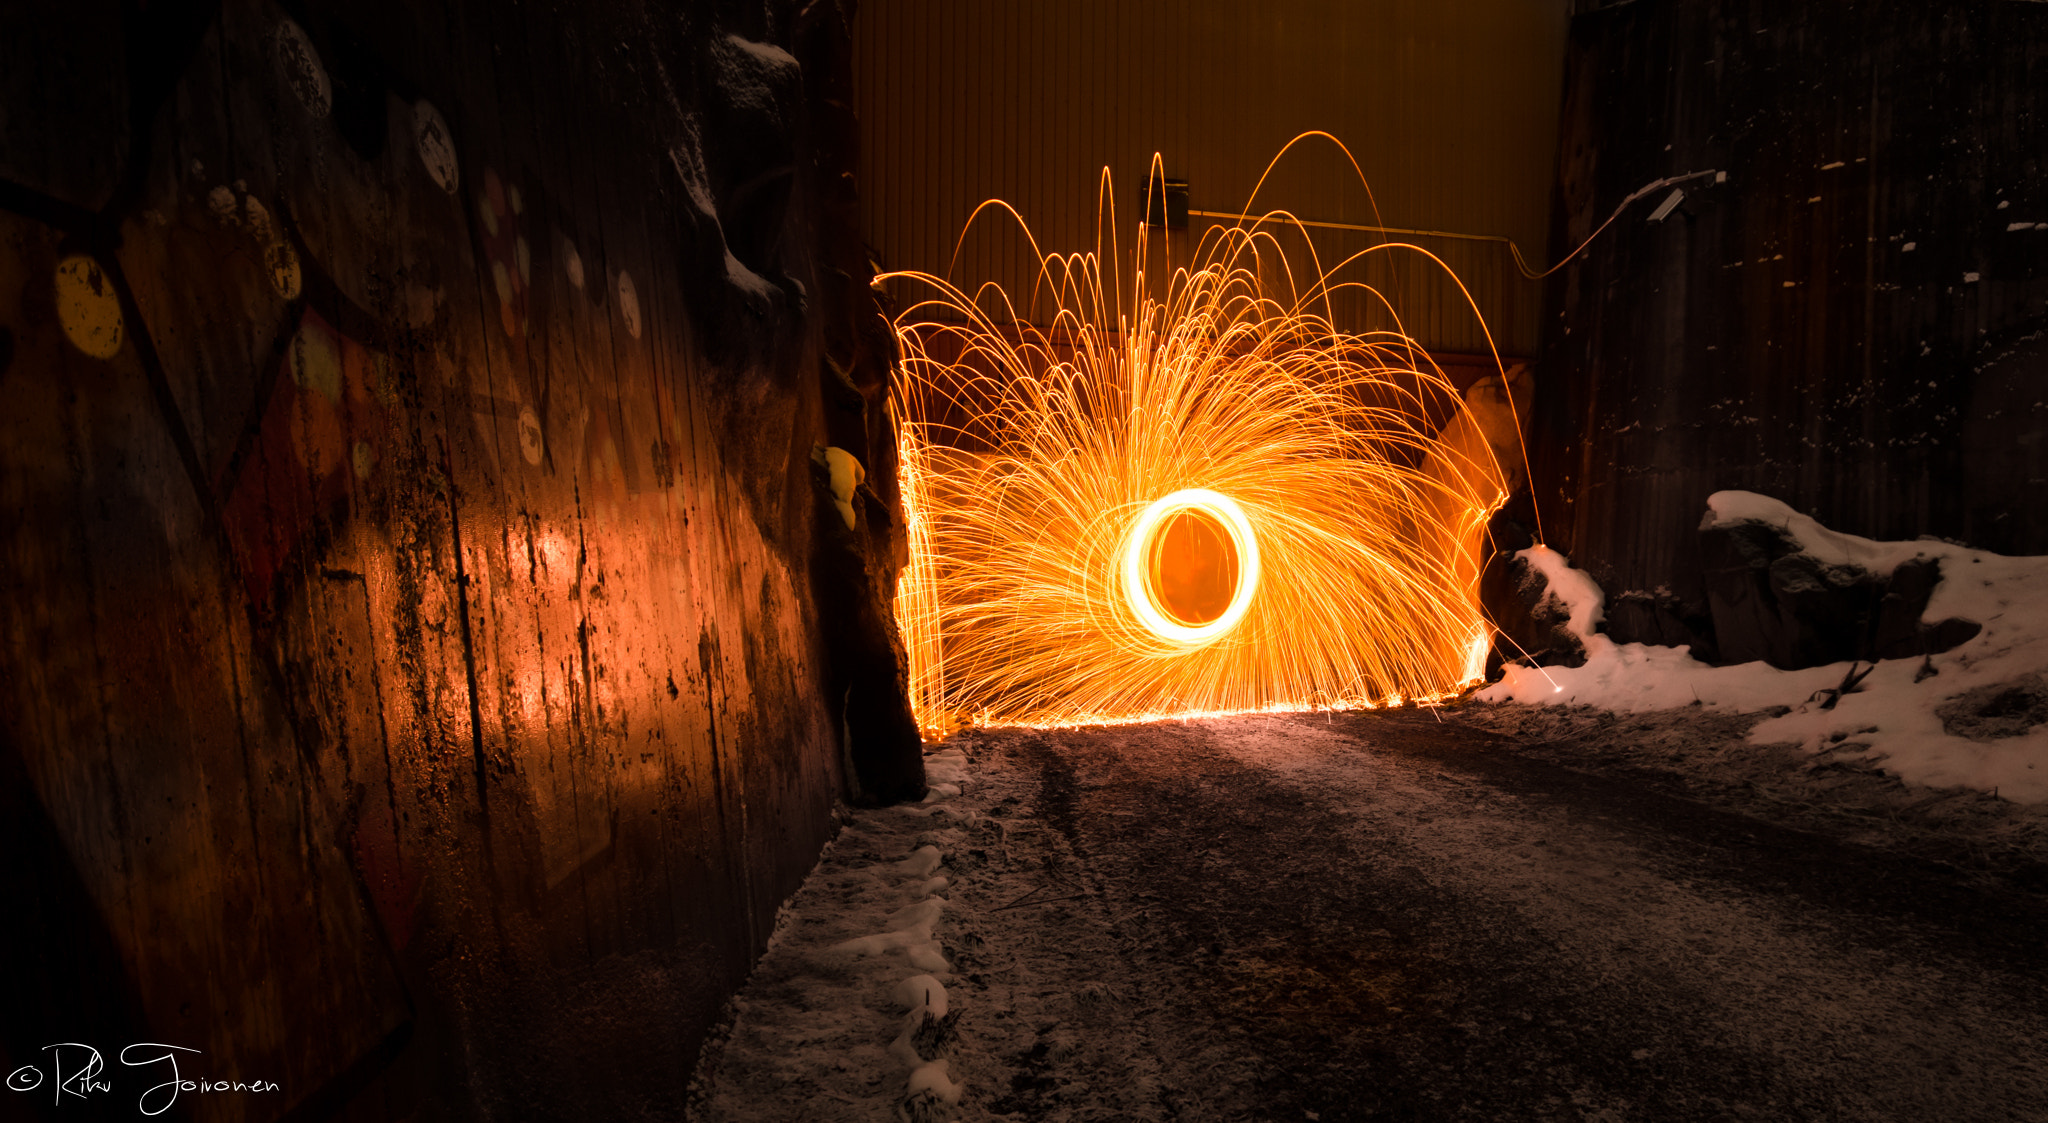 Photograph Pyromaniac by Riku Toivonen on 500px